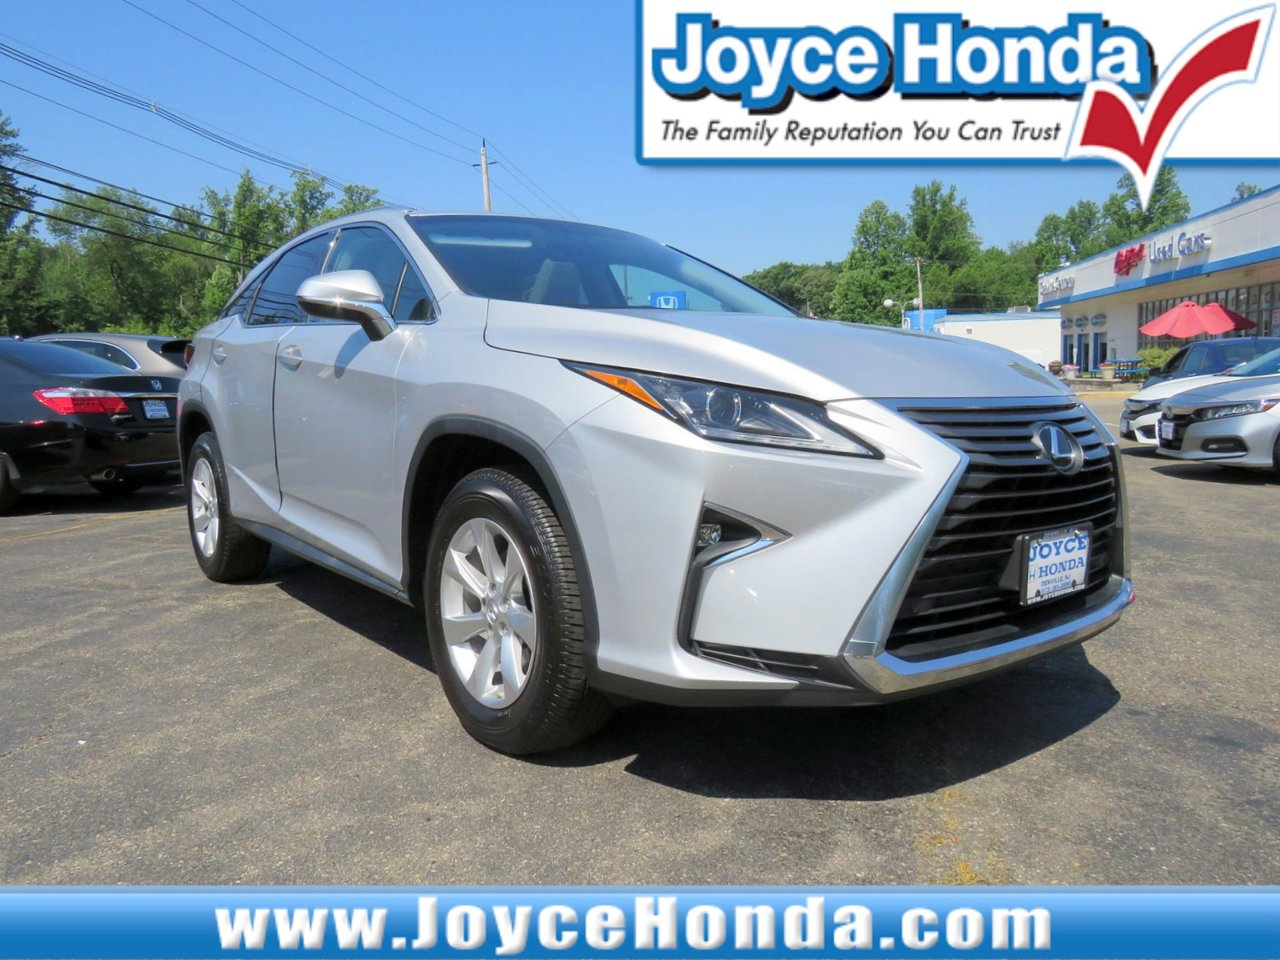 2016 lexus rx 350 2t2bzmca2gc014424 grecco quality used cars rockaway nj grecco quality used cars